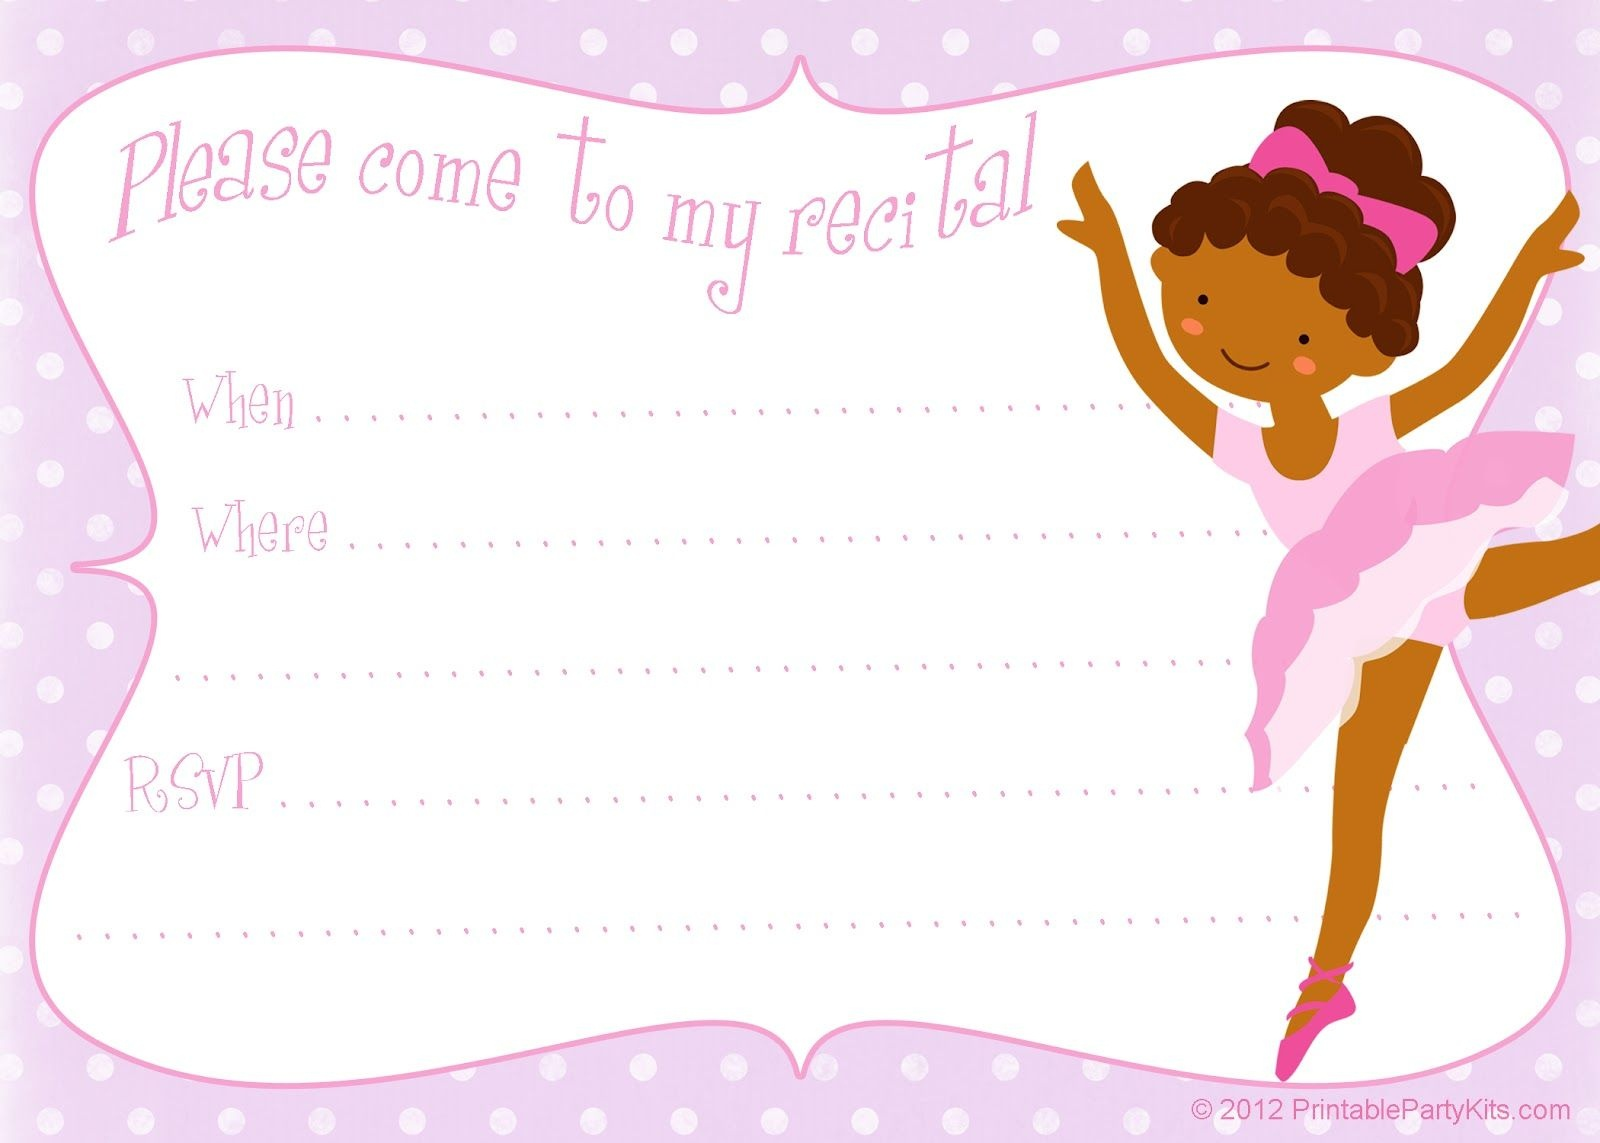 Free Printable Party Invitations: Printable Dance Recital - Free Printable Dance Recital Cards